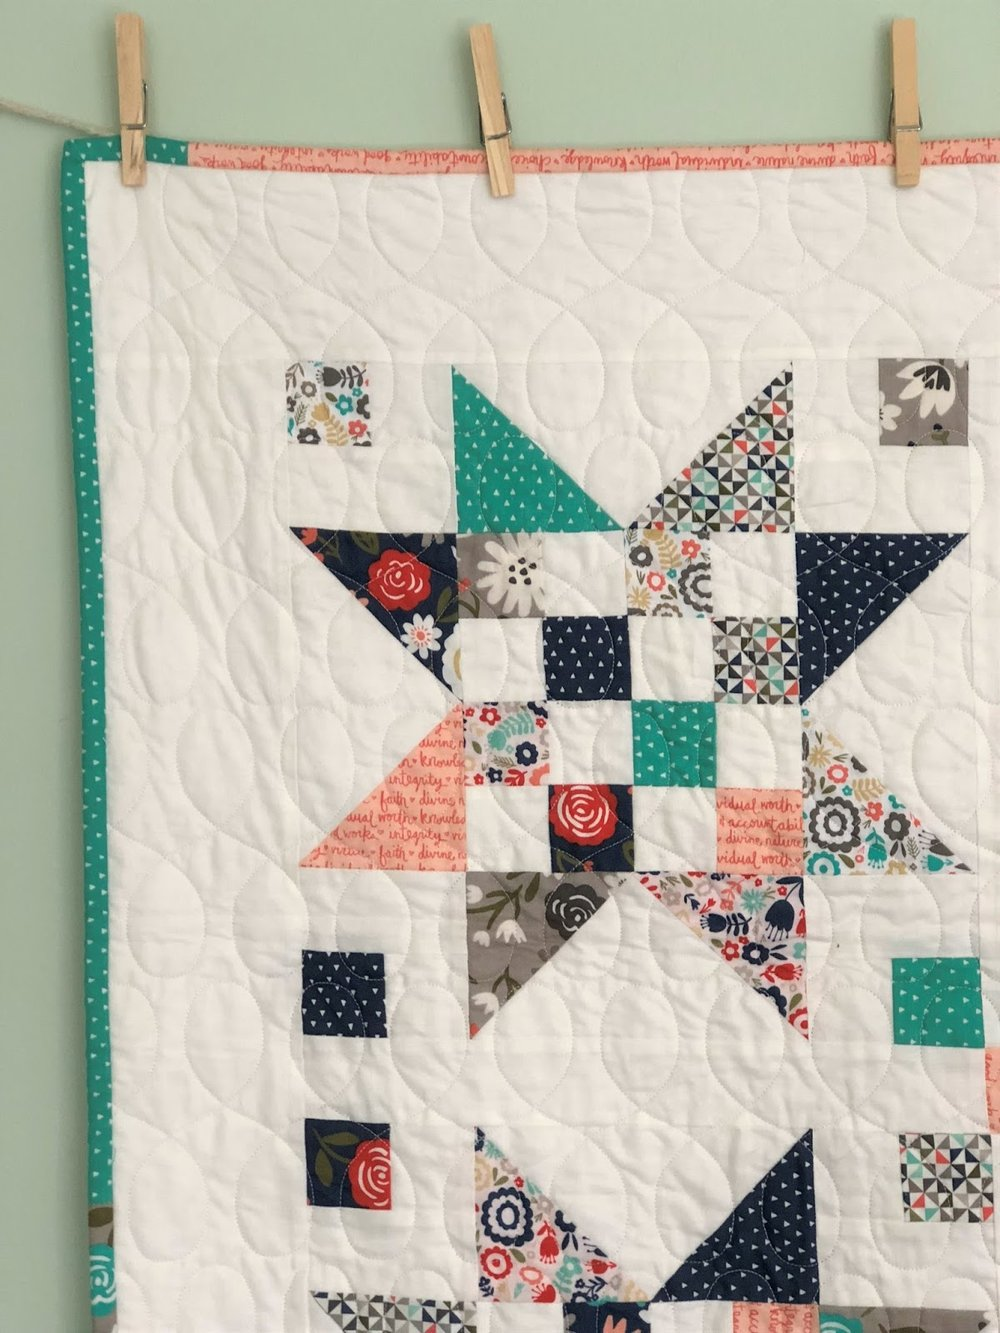 Amber over at  Gigi's Thimbles  designed this pattern and made this quilt. It works so well with the collection